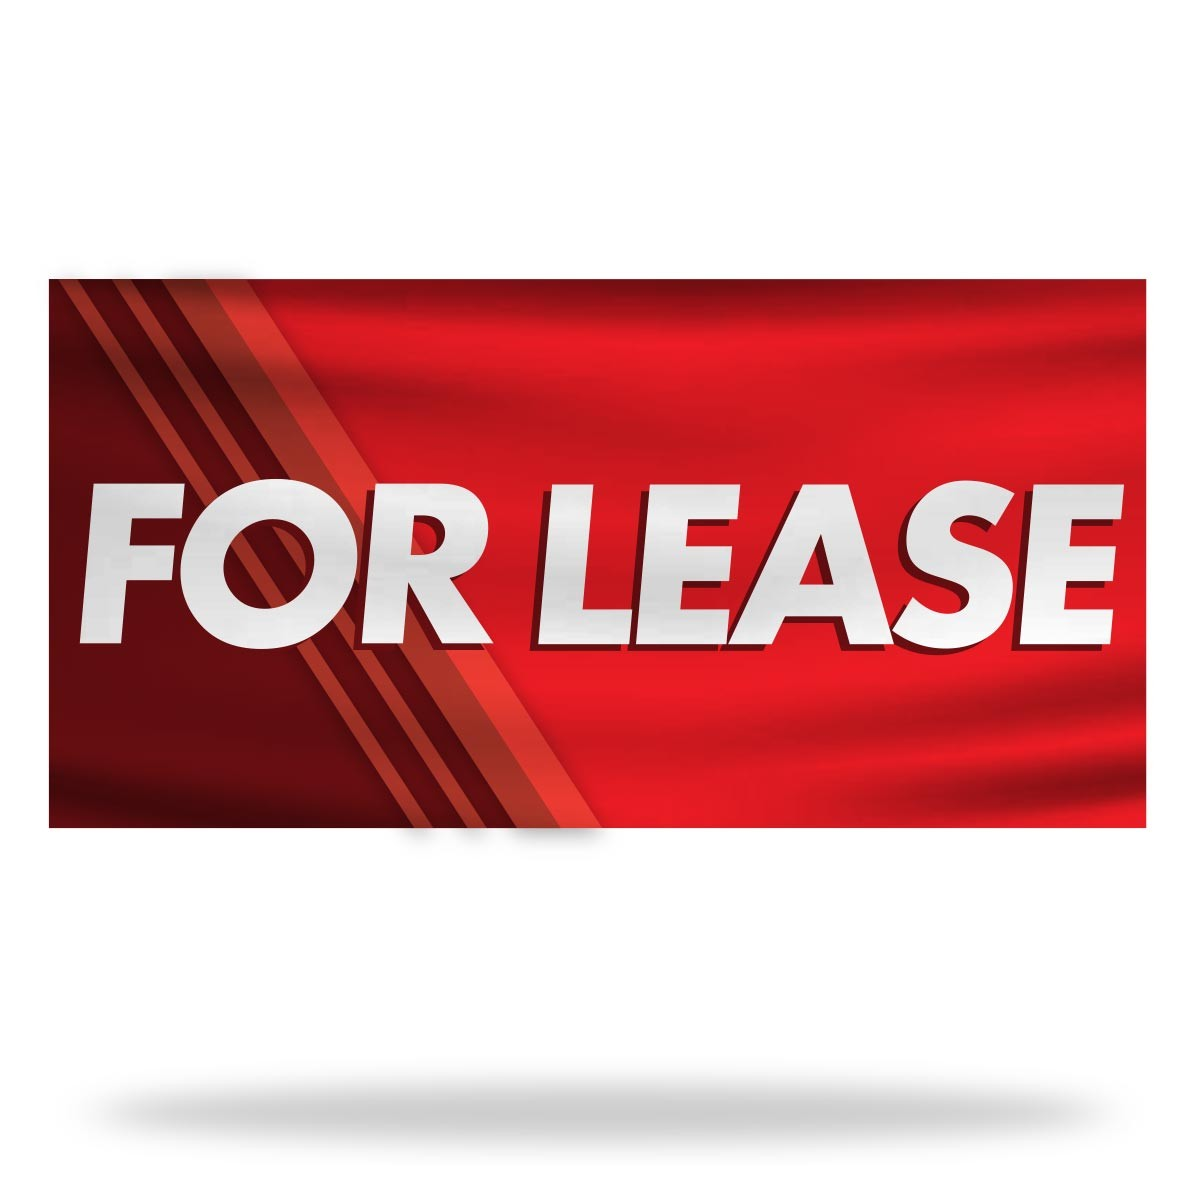 For Lease Flags & Banners Design 01